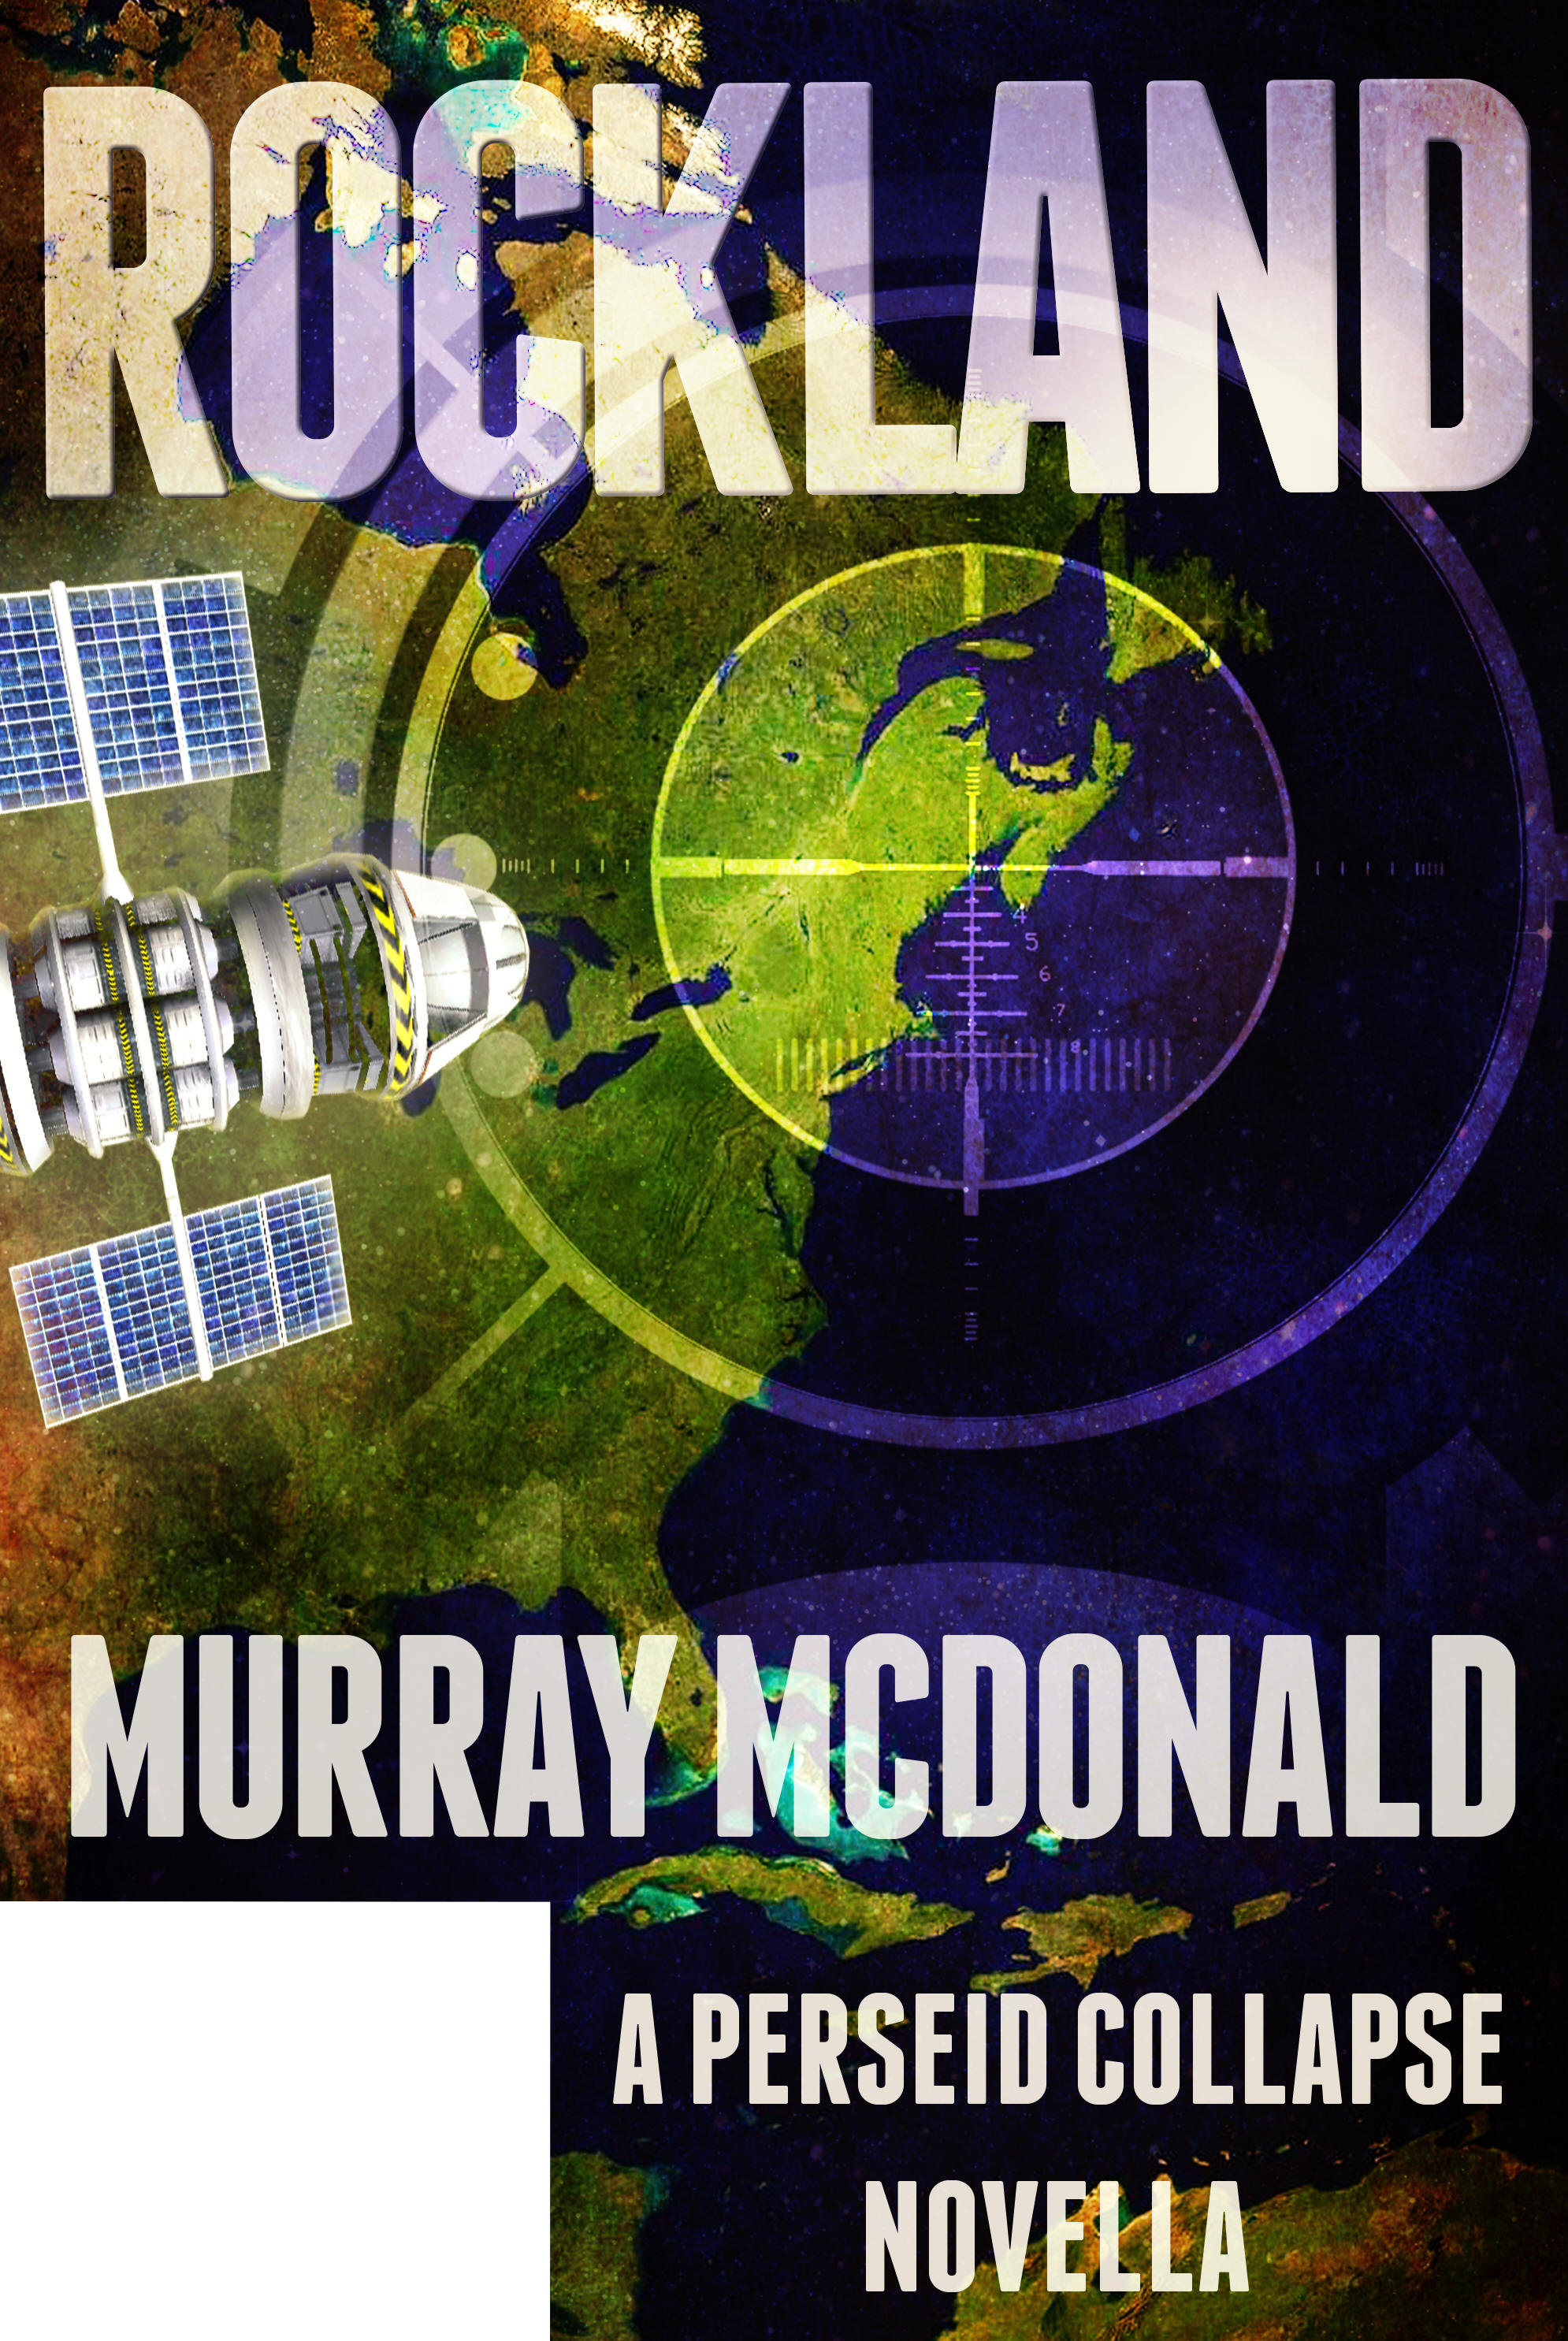 murray mcdonald rockland